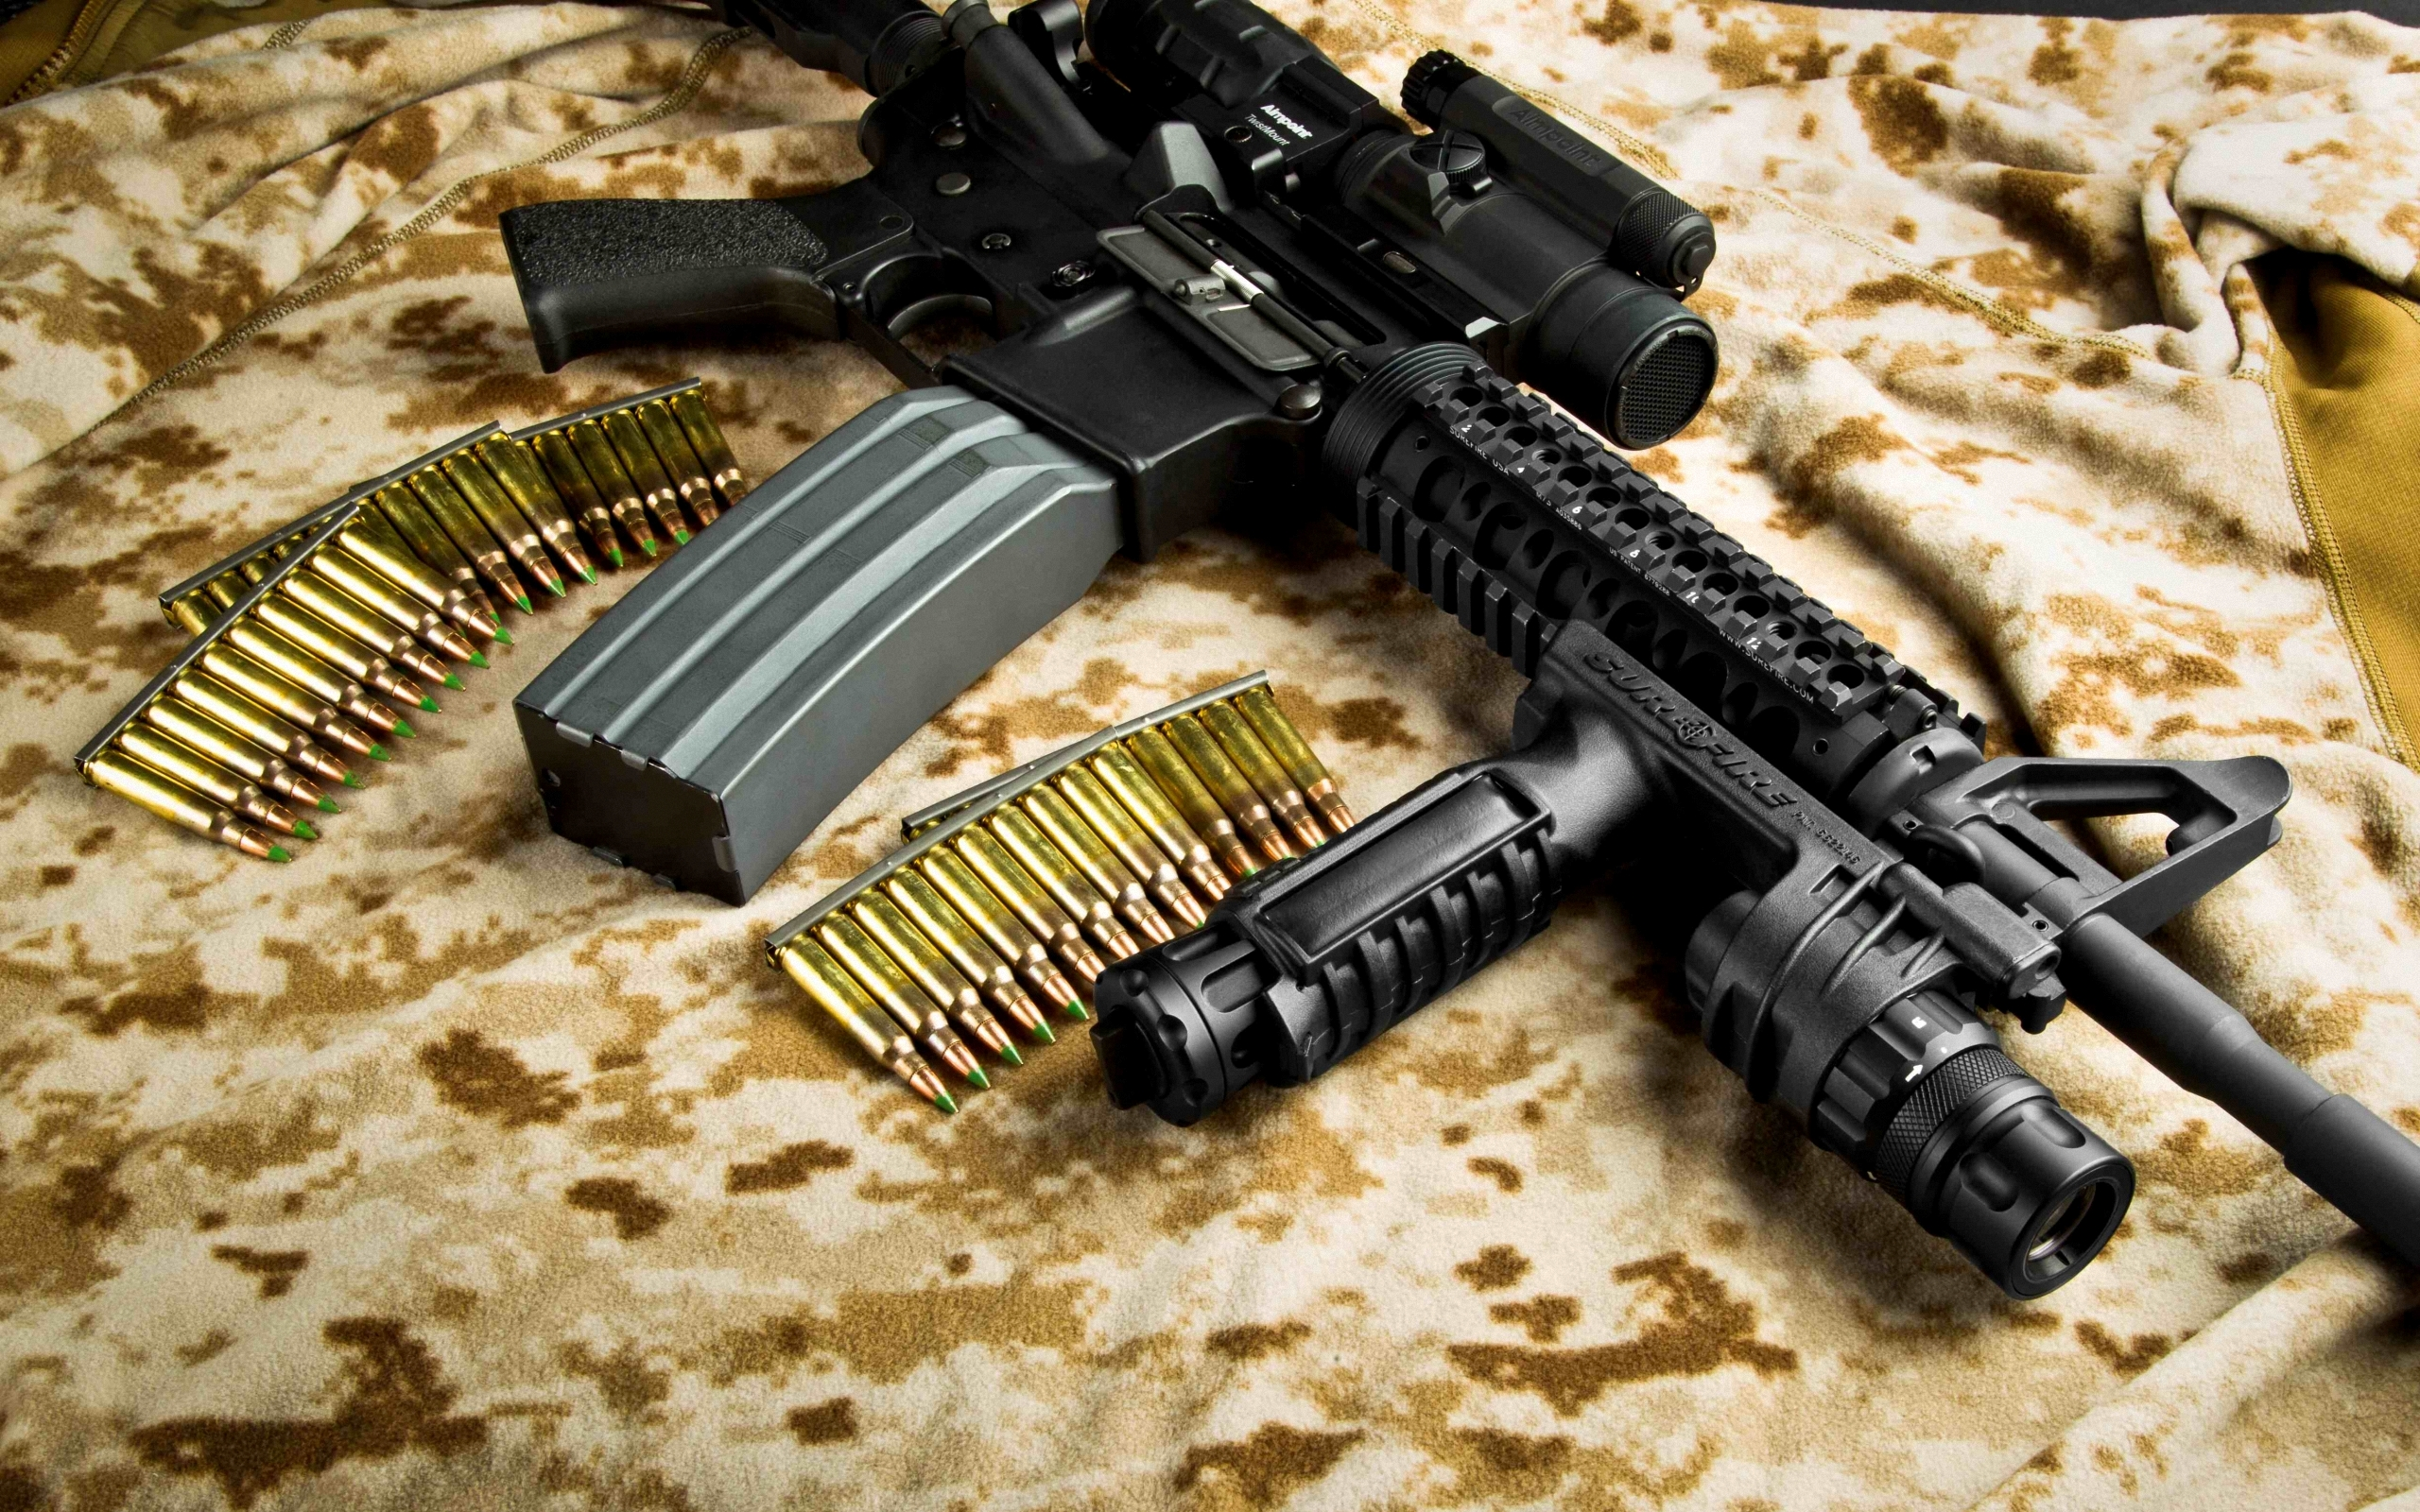 Gun Ammo Wallpaper Military Rifle Police Ammo